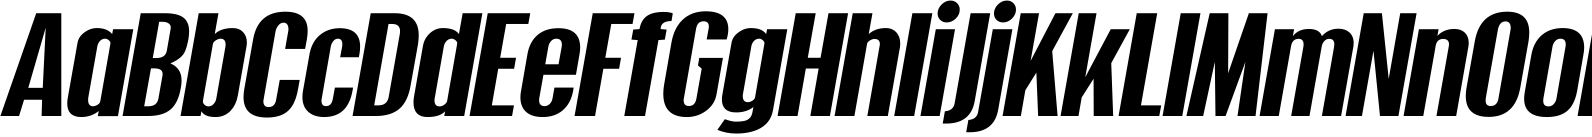 Xheighter Oblique Font